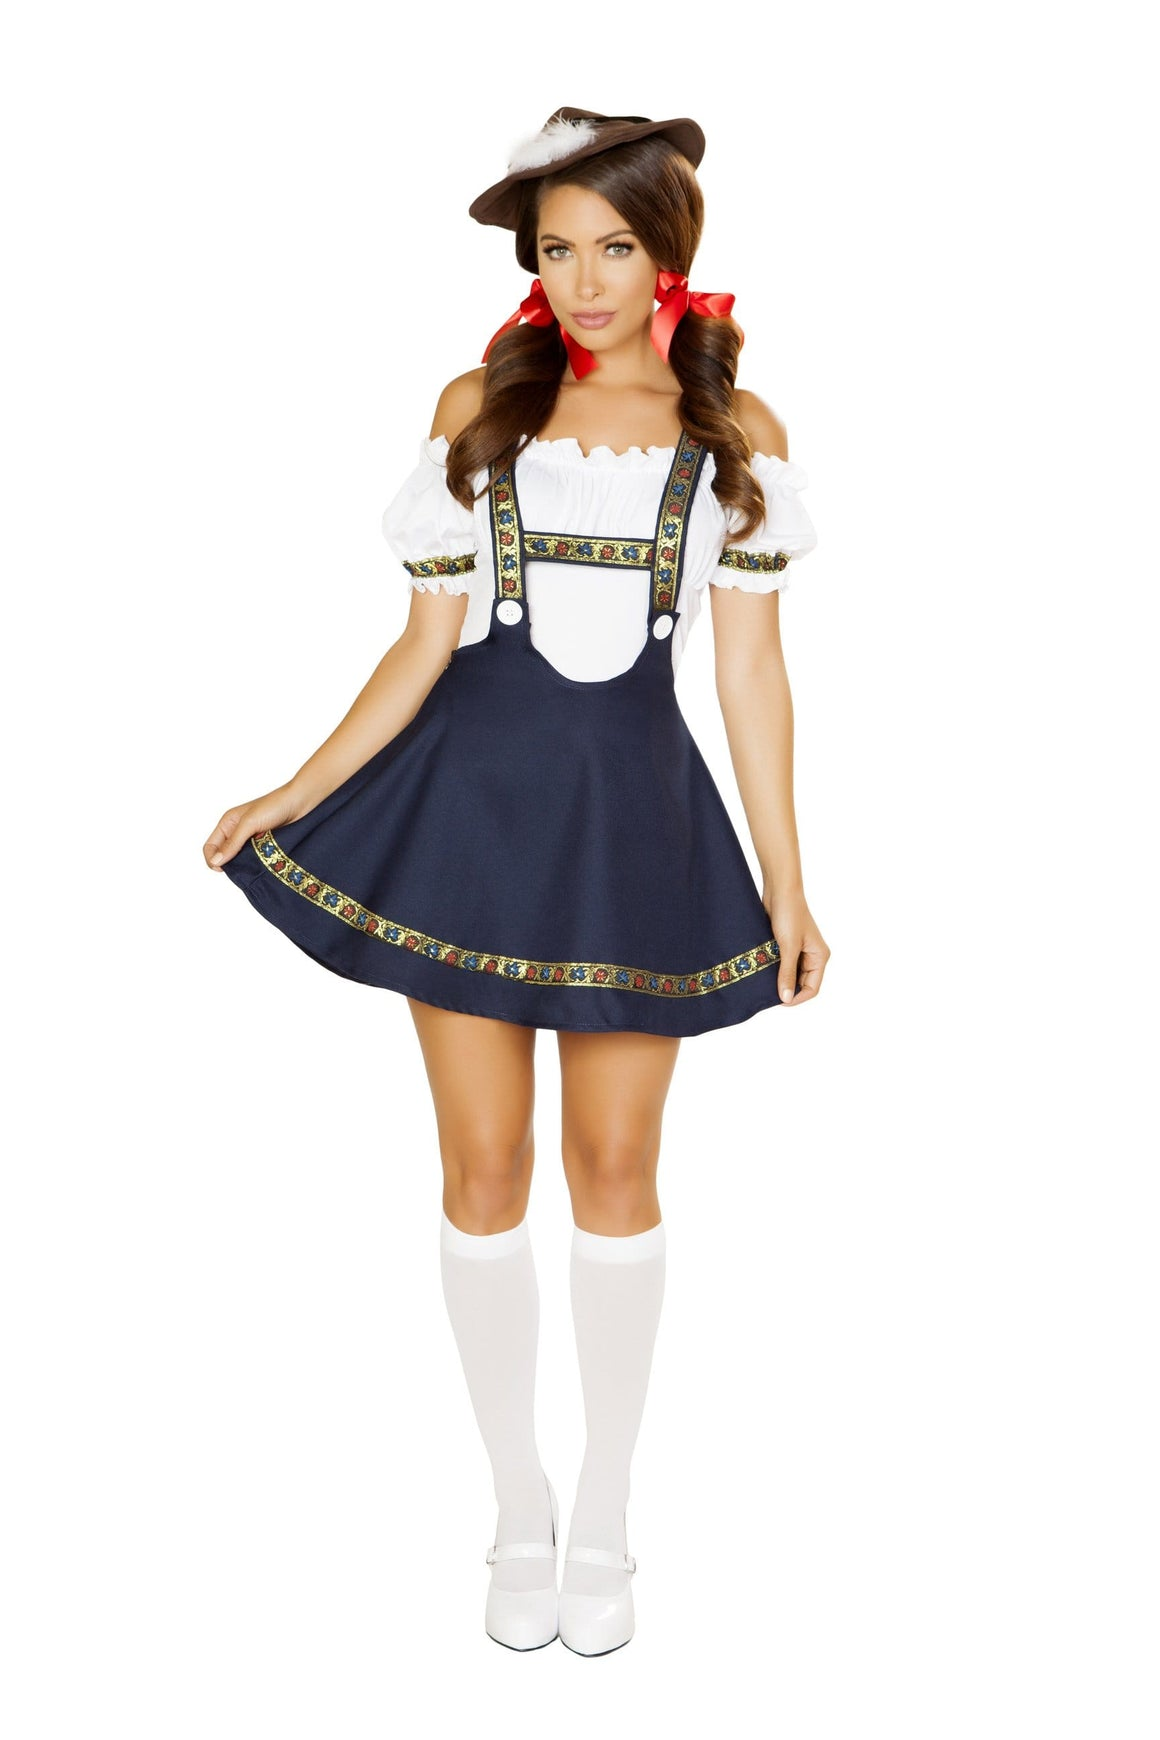 Roma Small / Blue 3pc Bavarian Beauty SHC-4884-S-R Apparel & Accessories > Costumes & Accessories > Costumes